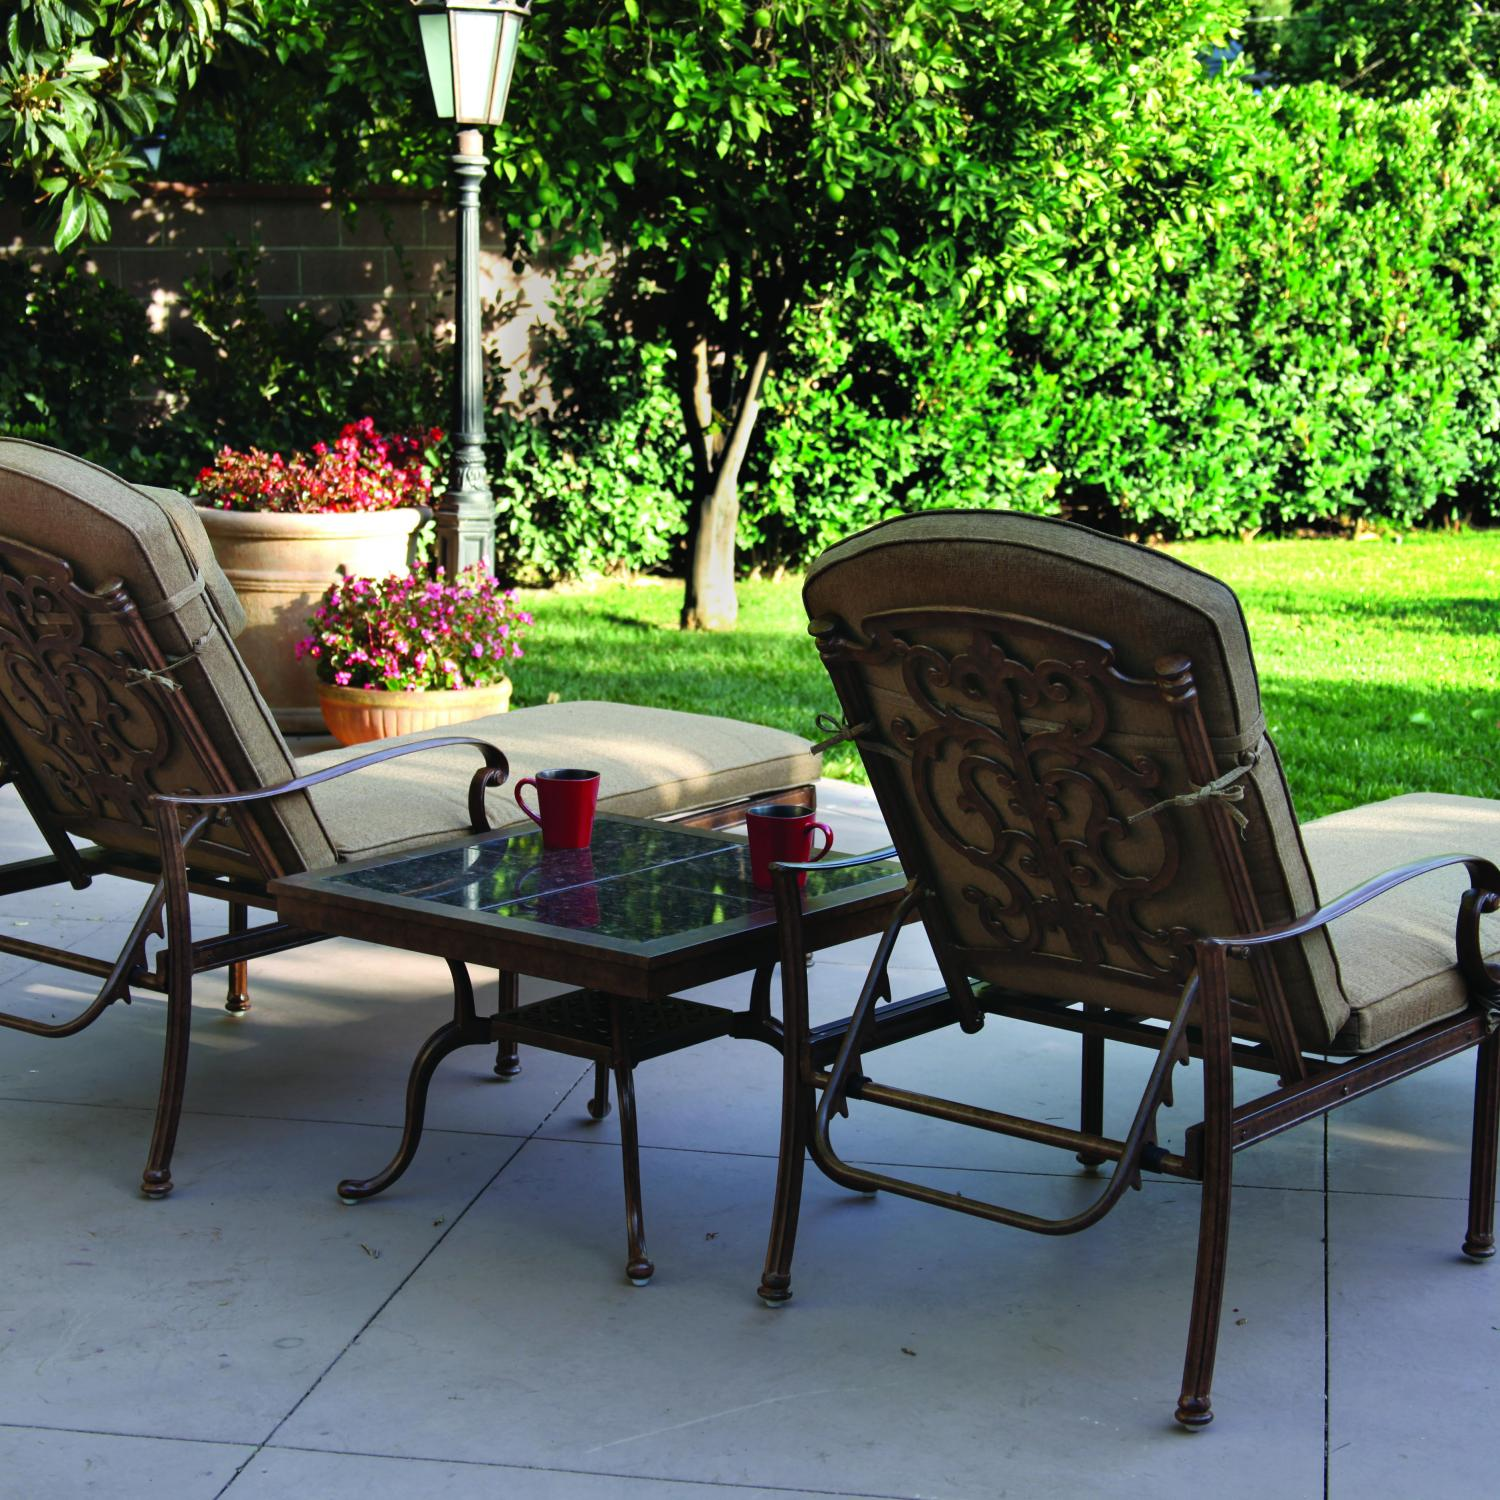 Darlee Santa Barbara 2-Person Patio Chaise Lounge Set - Mocha / Brown Granite Tile